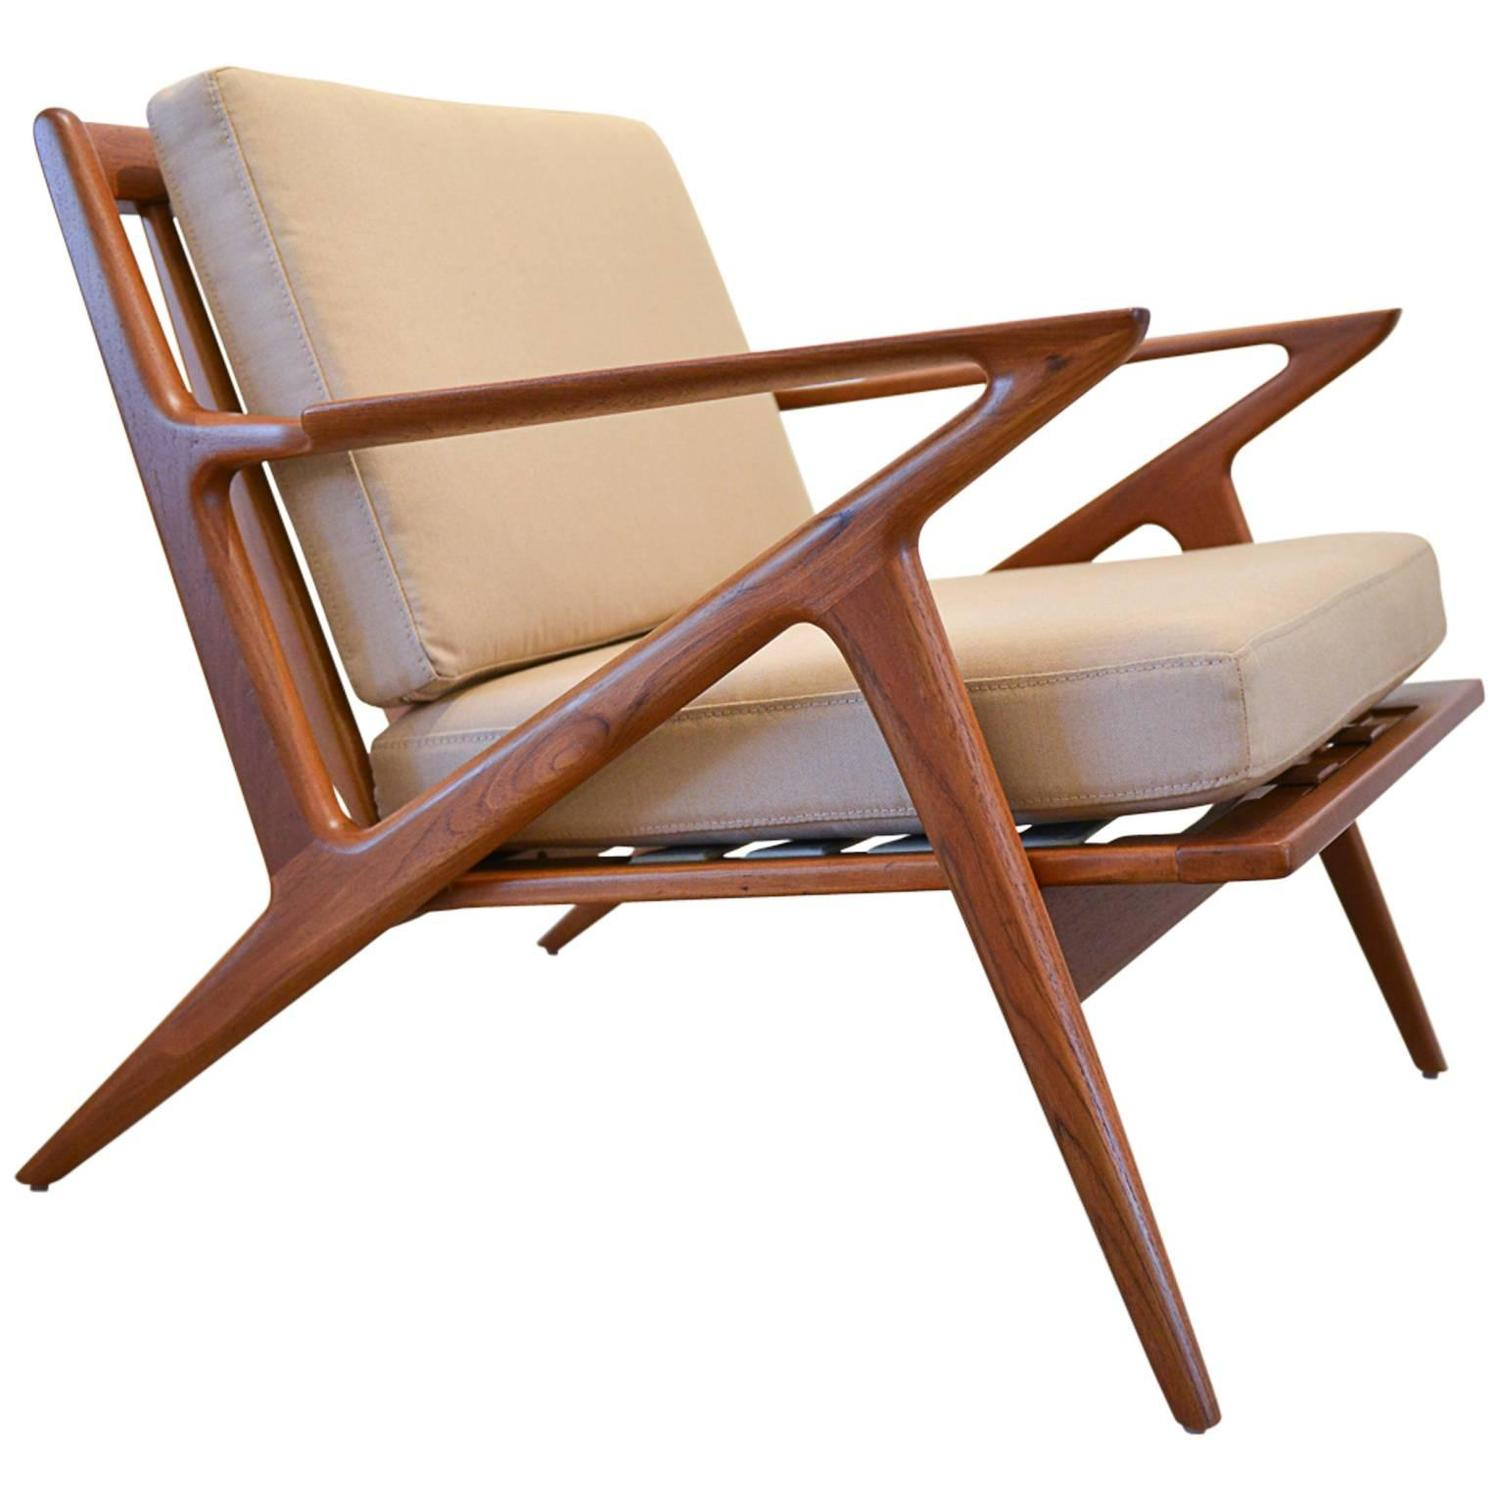 Z Lounge Chair by Poul Jensen for Selig at 1stdibs